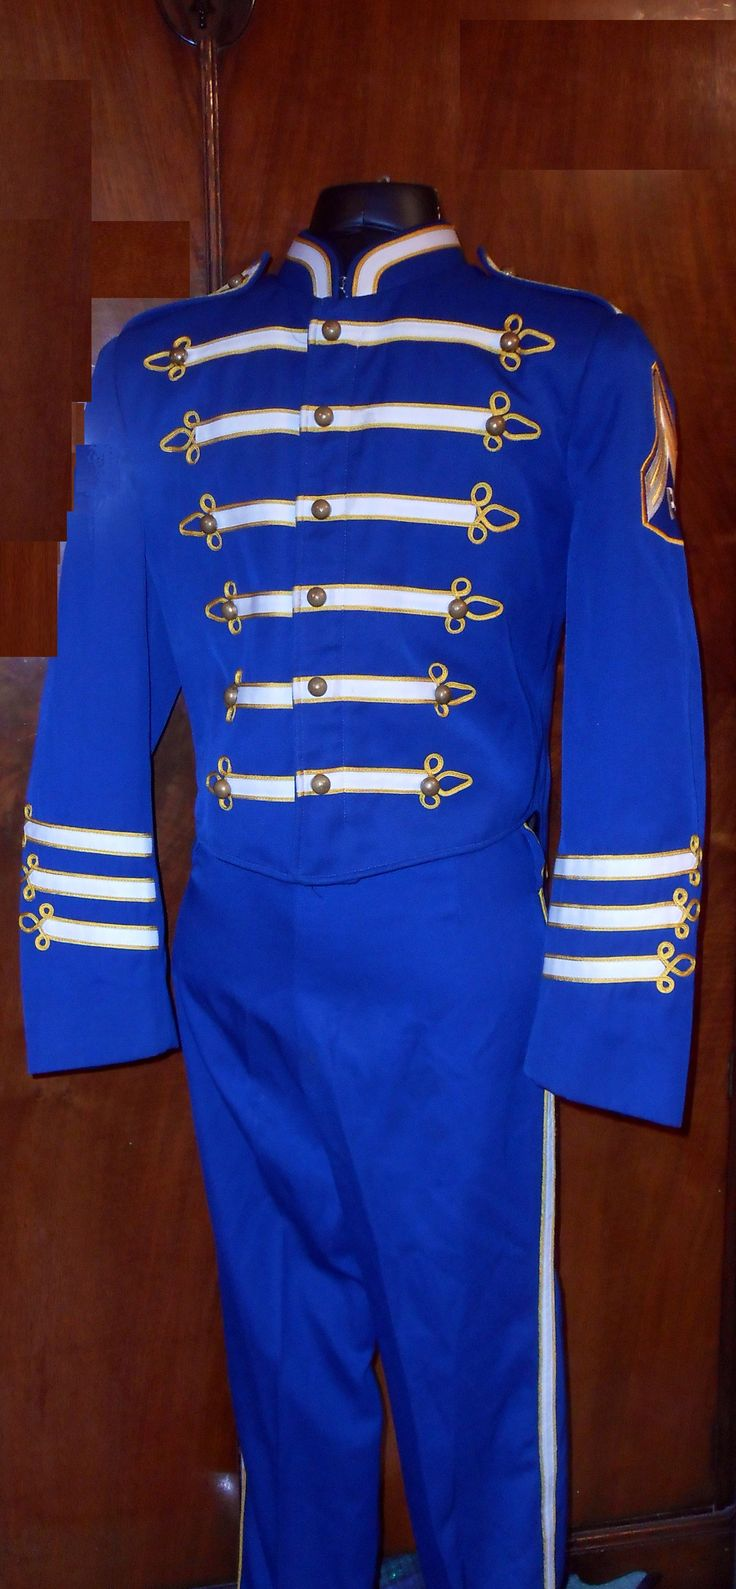 blue cadet uniform with tails, very classic style